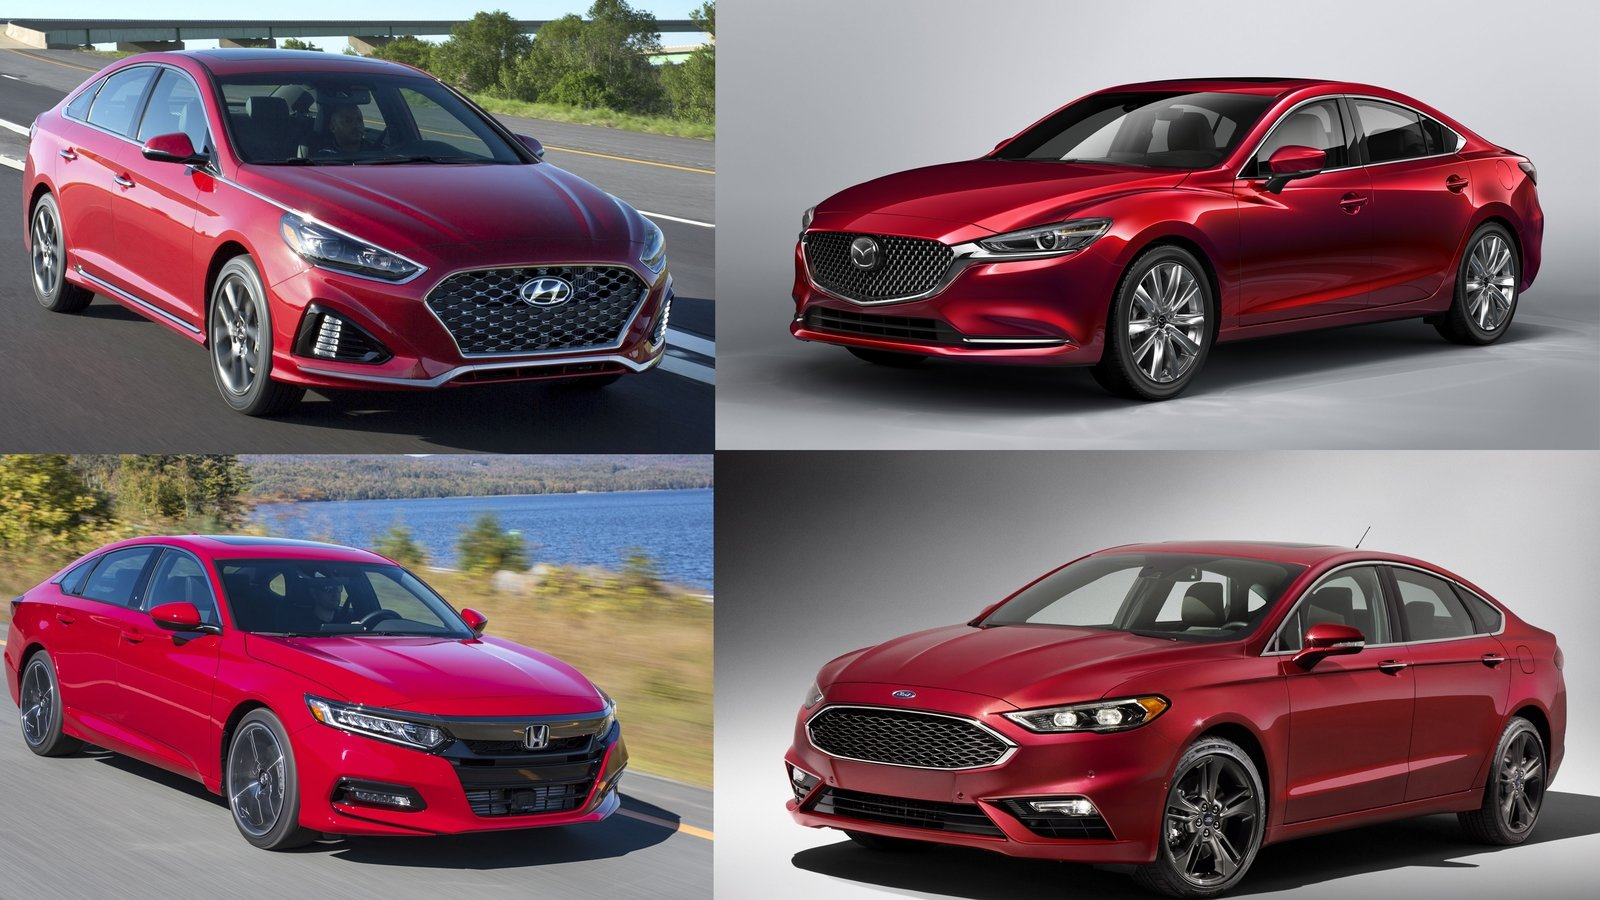 Best Luxury Midsize Cars For The Money In 2018: Top Midsize Sedans Of 2018